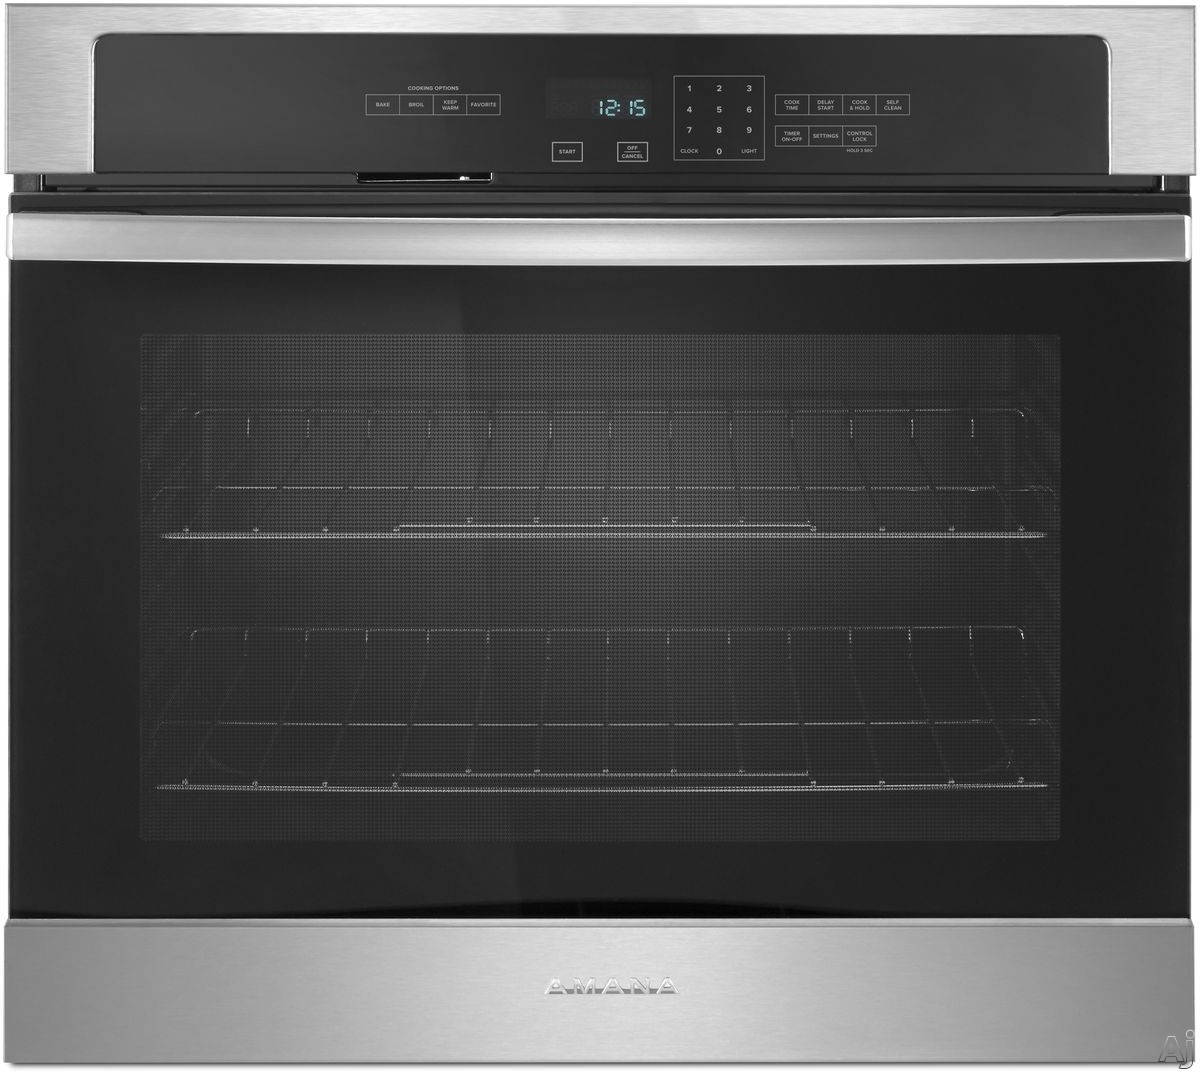 Picture of Amana AWO6317SF 27 Inch Single Electric Wall Oven with 43 cu ft Capacity Temp Assure Cooking System Hidden Bake Element Incandescent Lighting Fit System Self-Cleaning ADA Compliant and Sabbath Mode